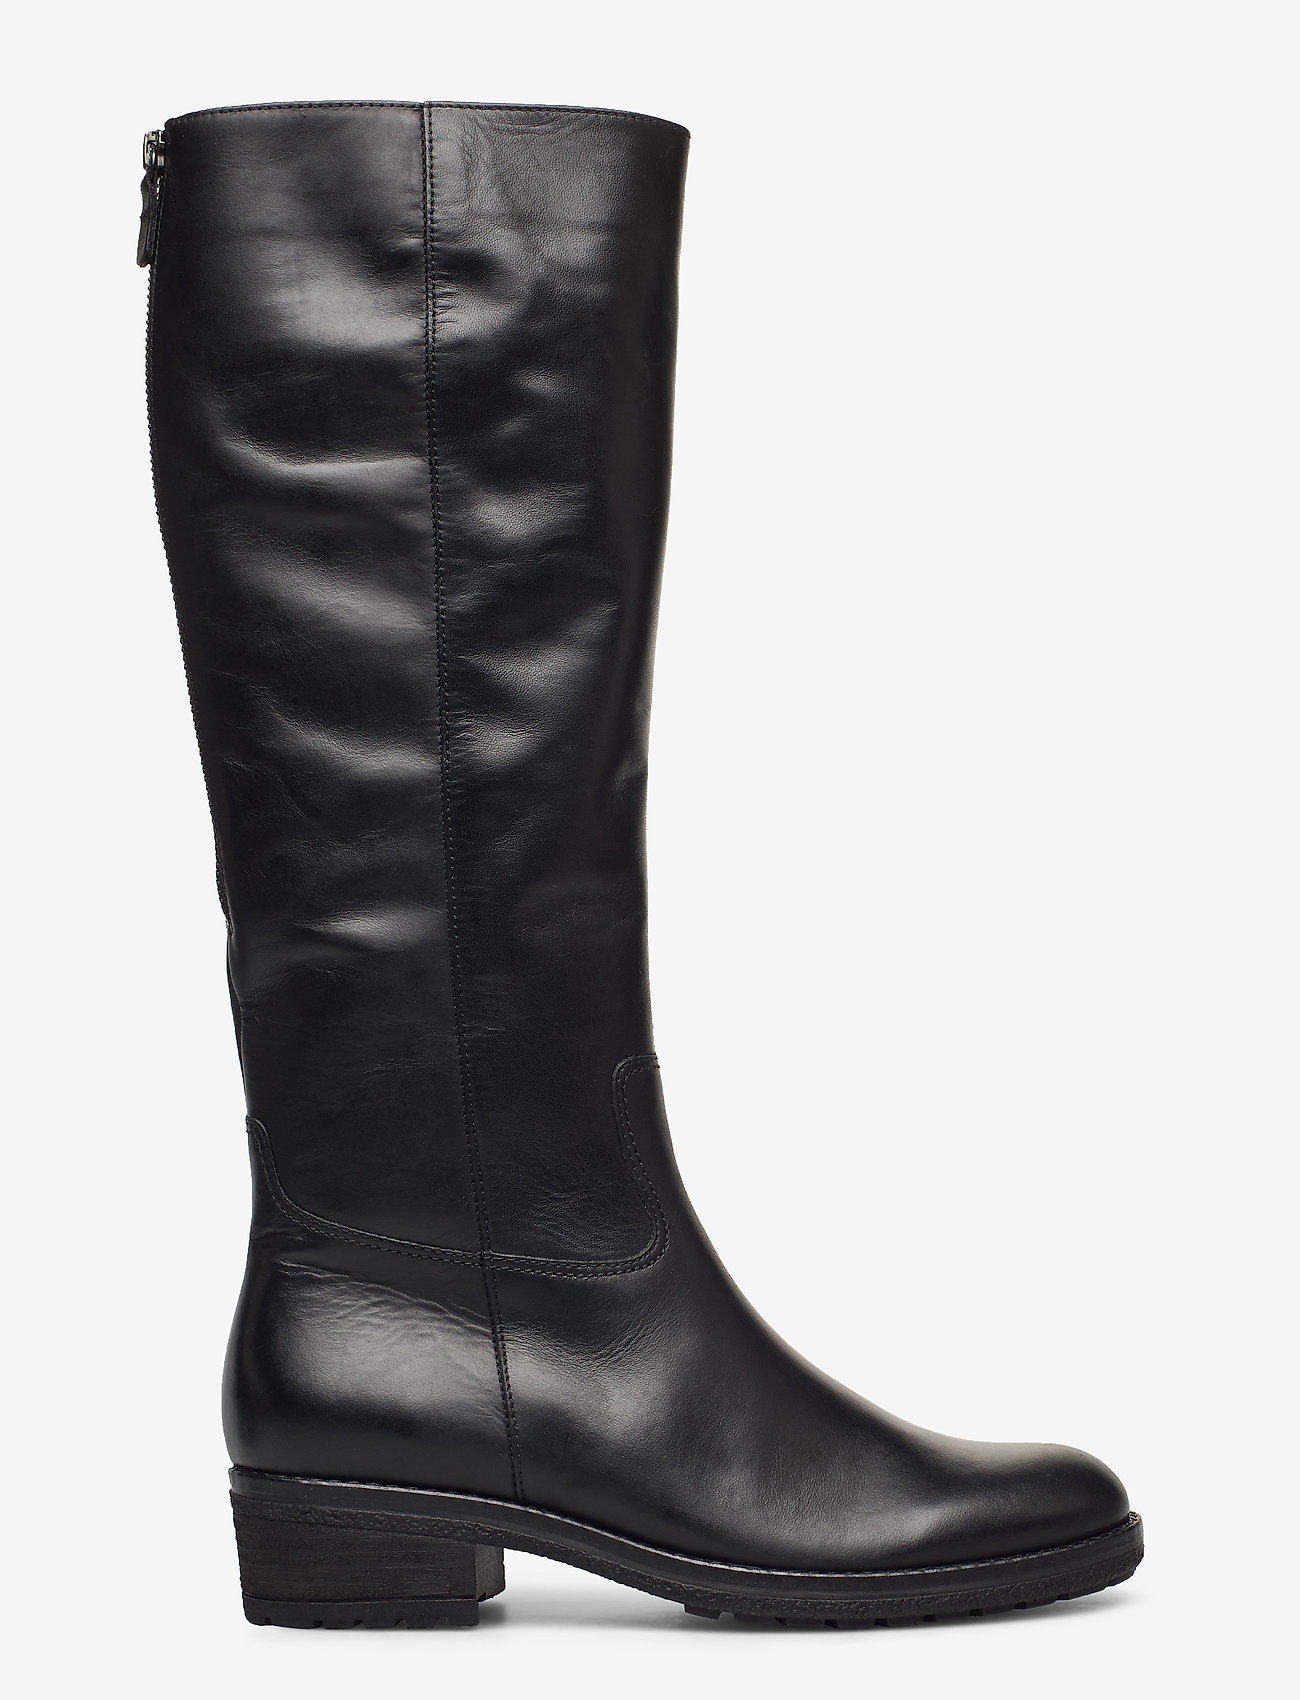 Boot (Black) (135 €) - Gabor y9iZA